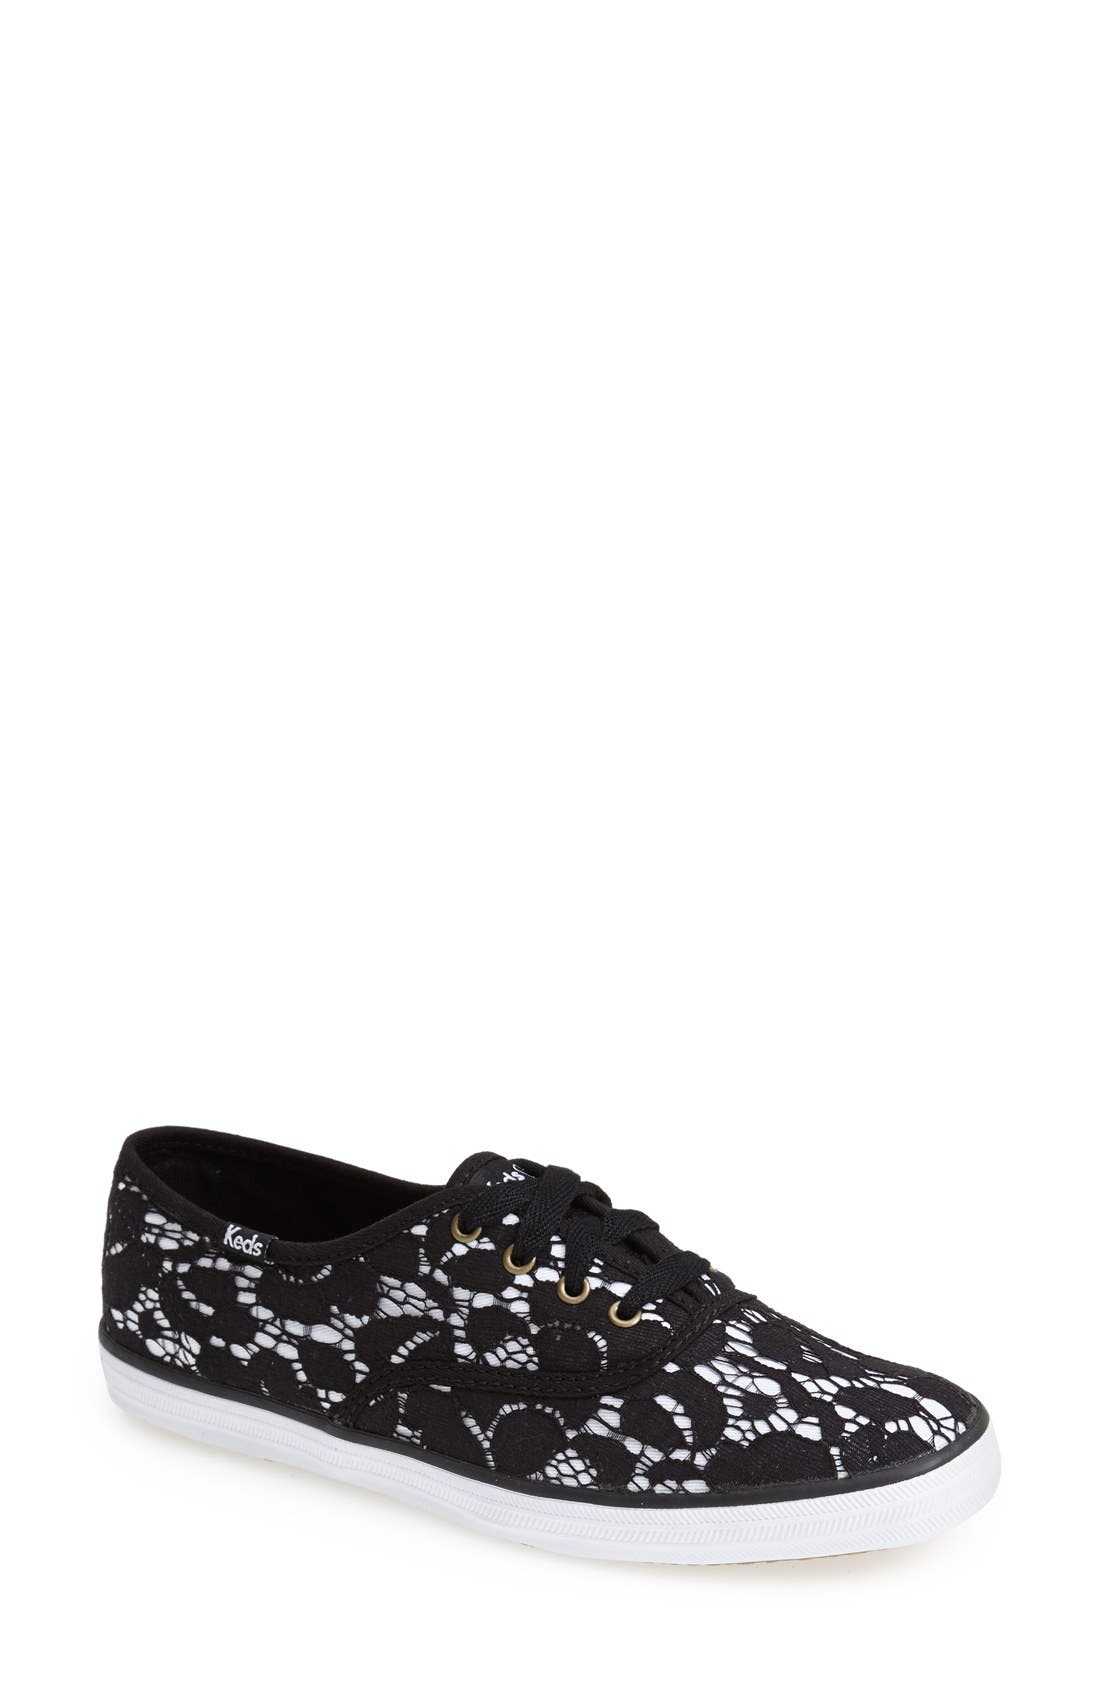 Alternate Image 1 Selected - Keds® Taylor Swift 'Lace' Champion Sneaker (Women)